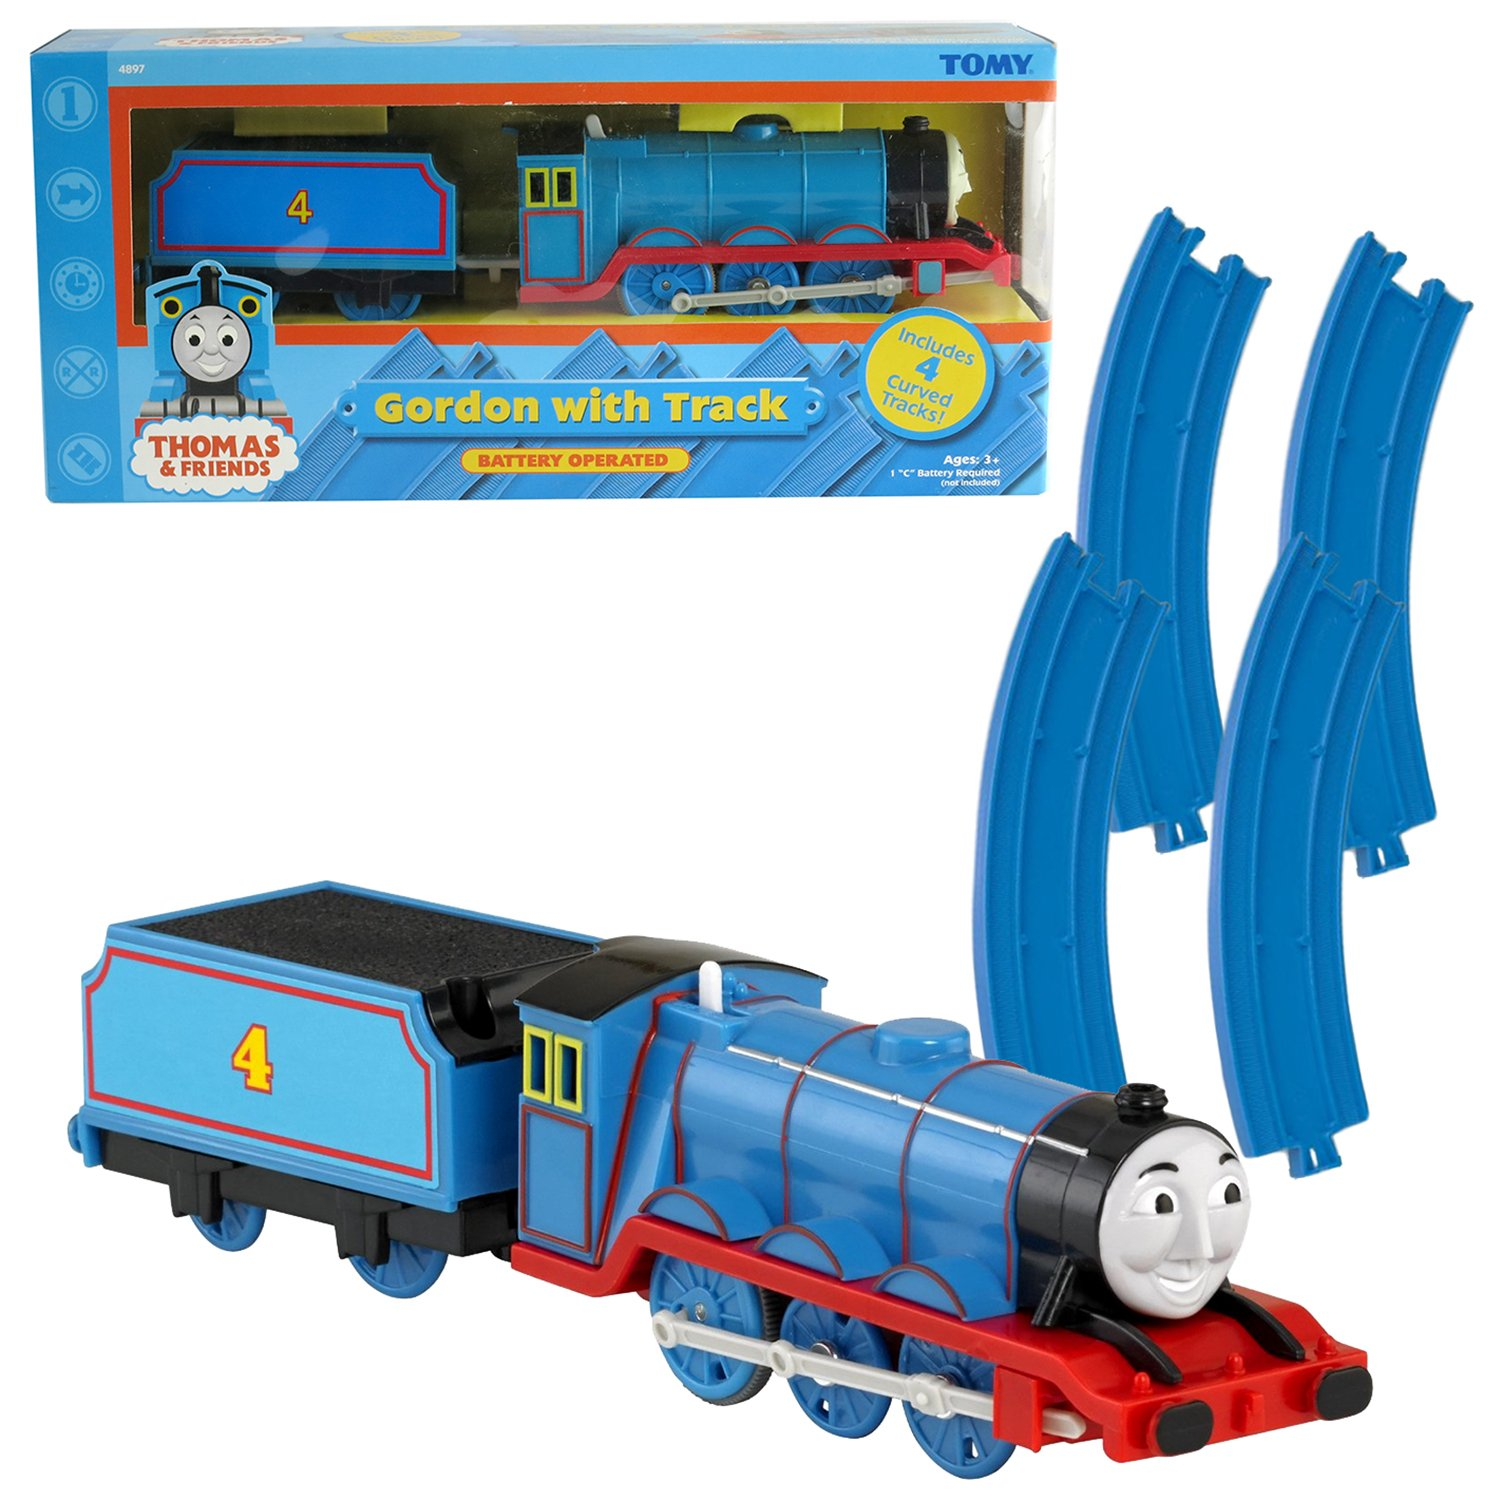 Cheap Tomy Train Set Instructions Find Tomy Train Set Instructions